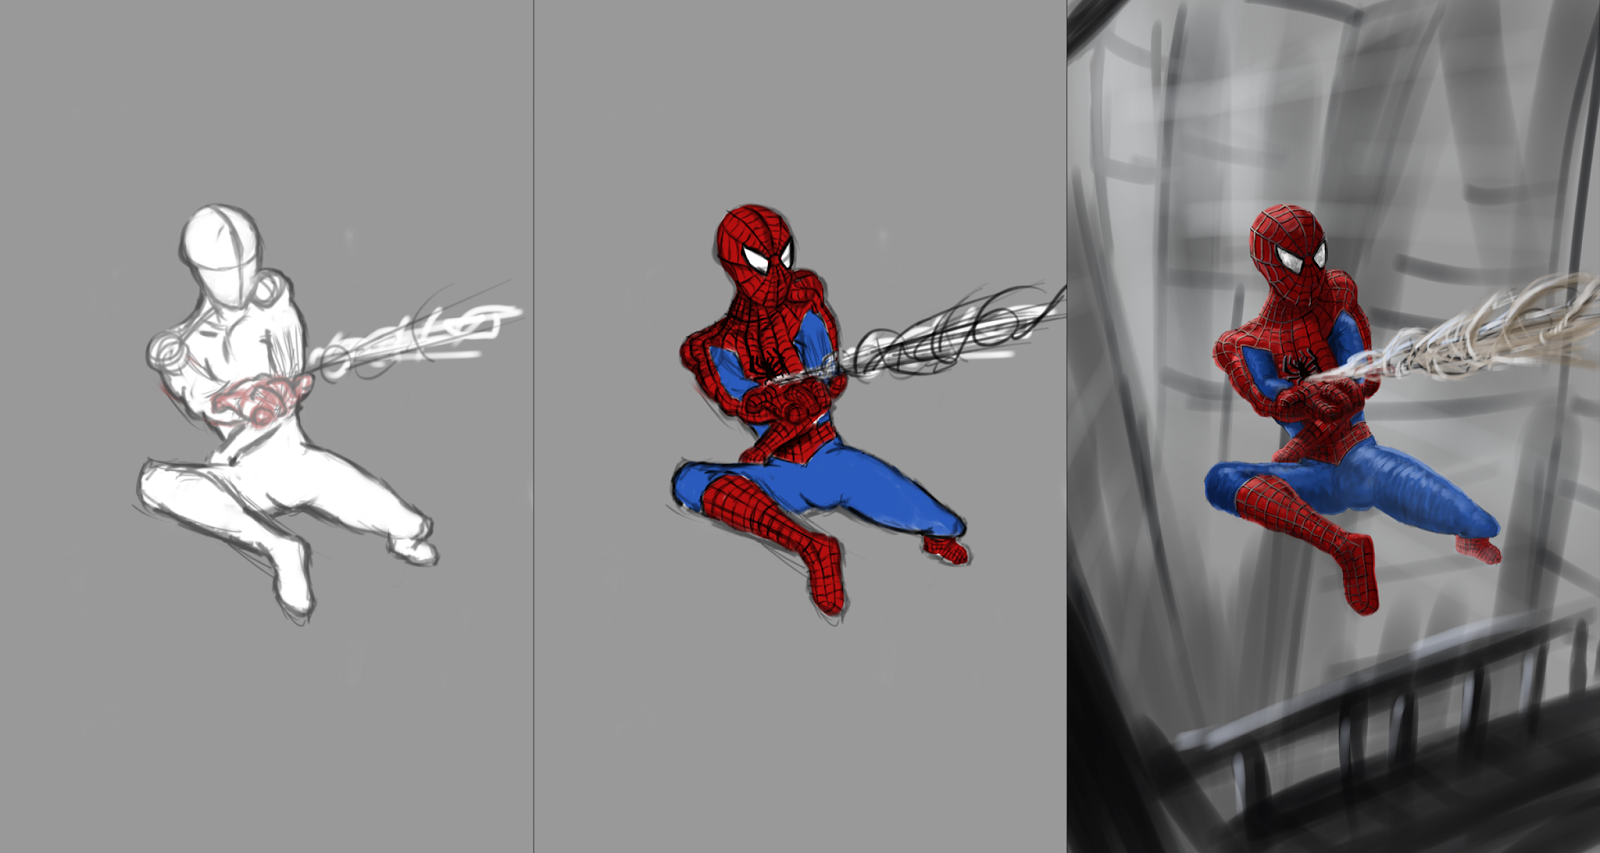 Spiderman autodesk sketchbook pro painting